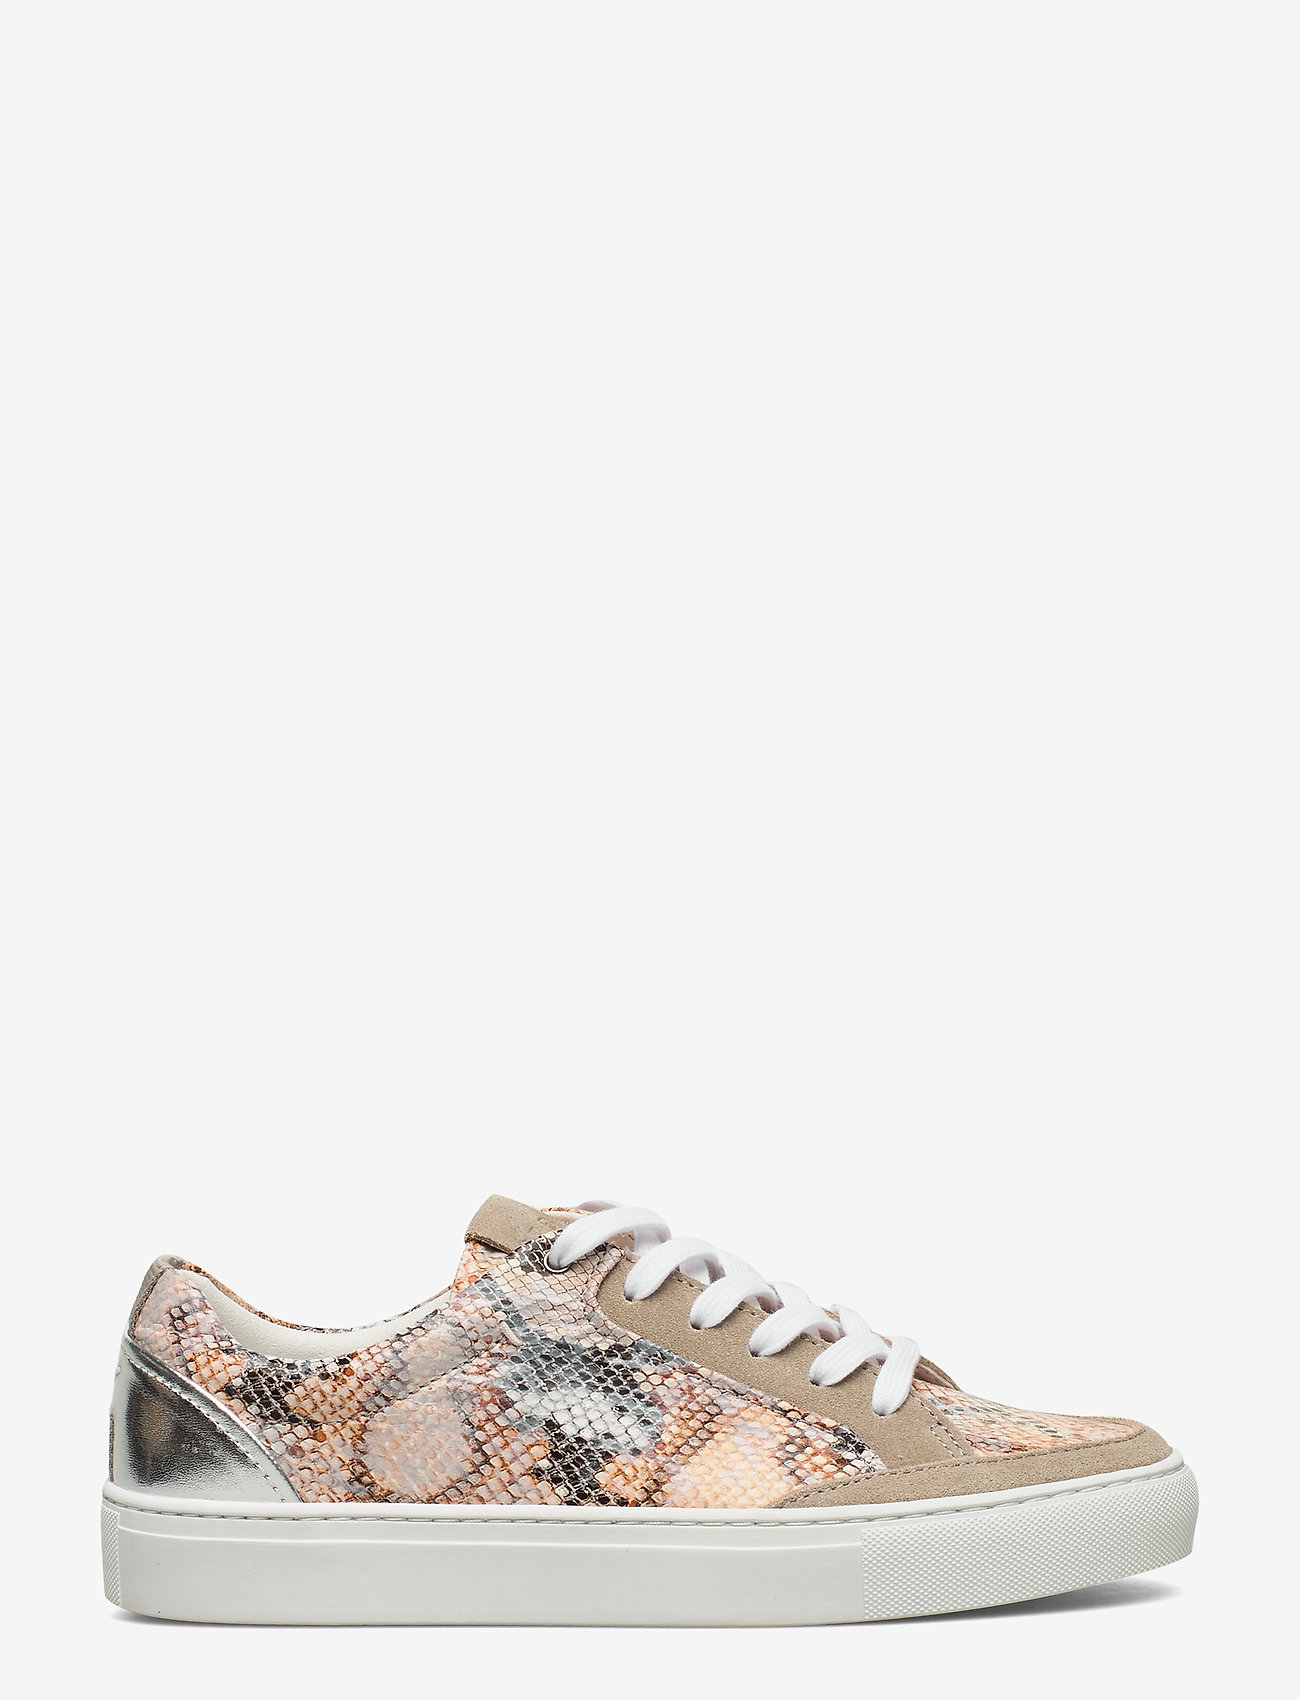 Stb-palo Low Lace Snake (Mix) - Shoe The Bear C1ry7r